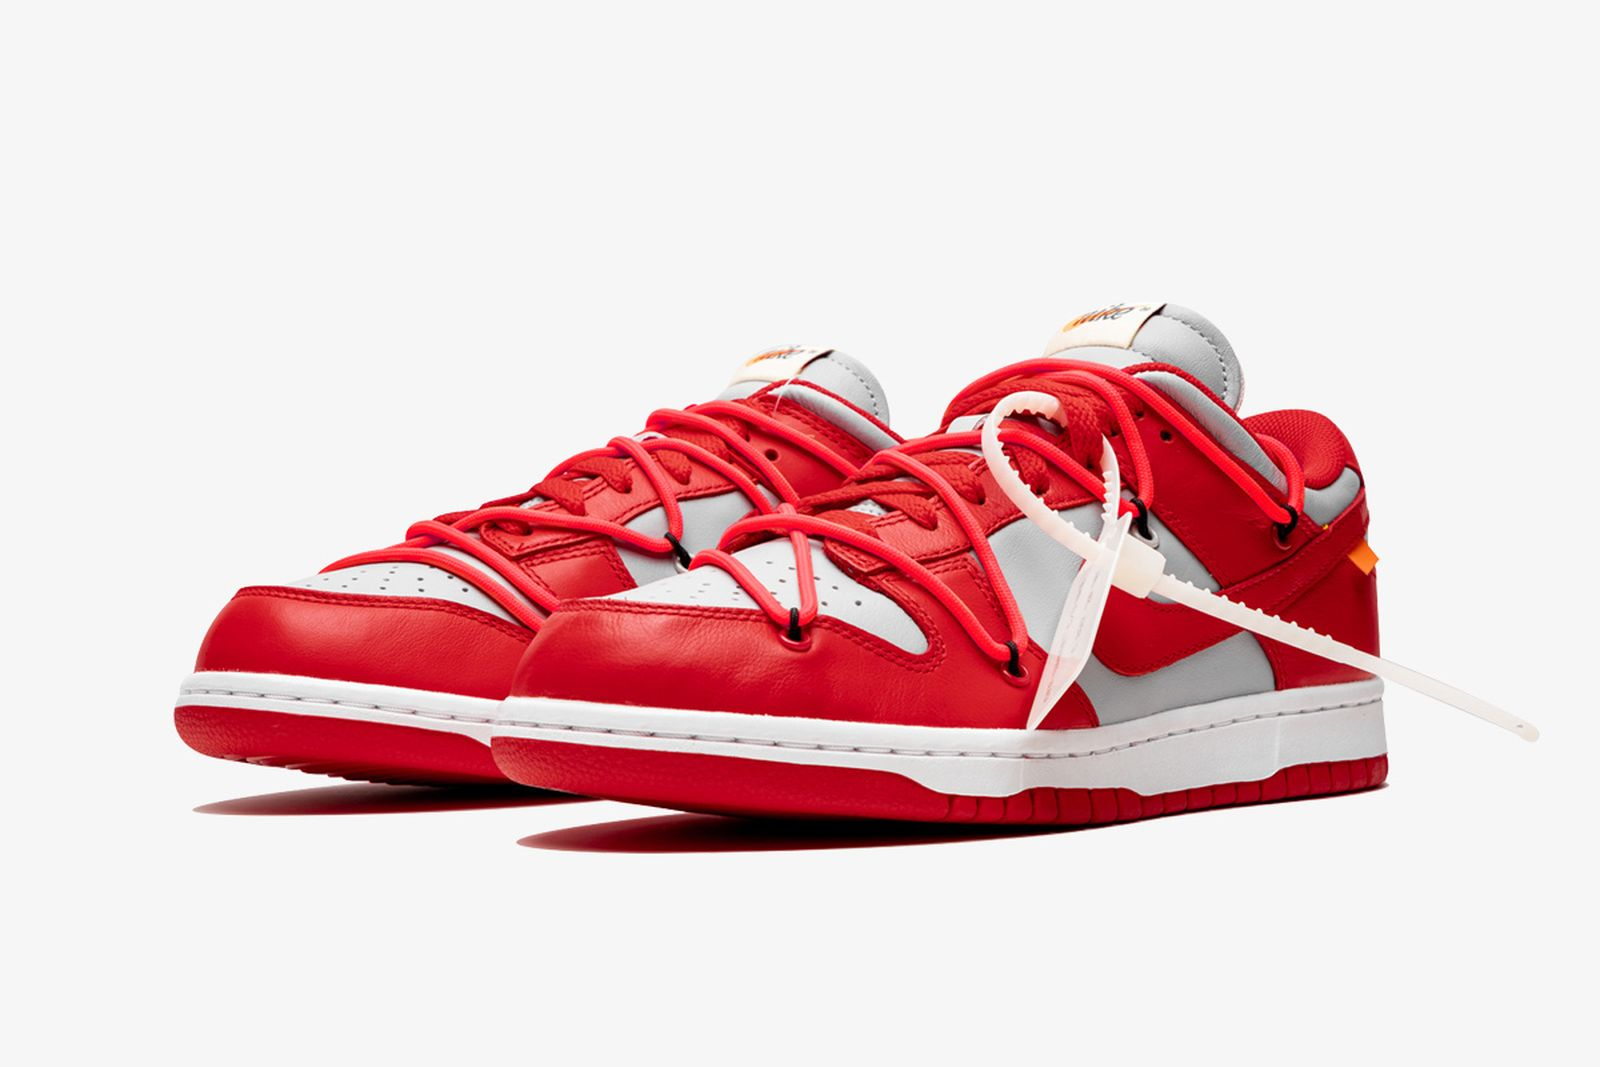 off-white-nike-dunk-low-university-red-release-date-price-03